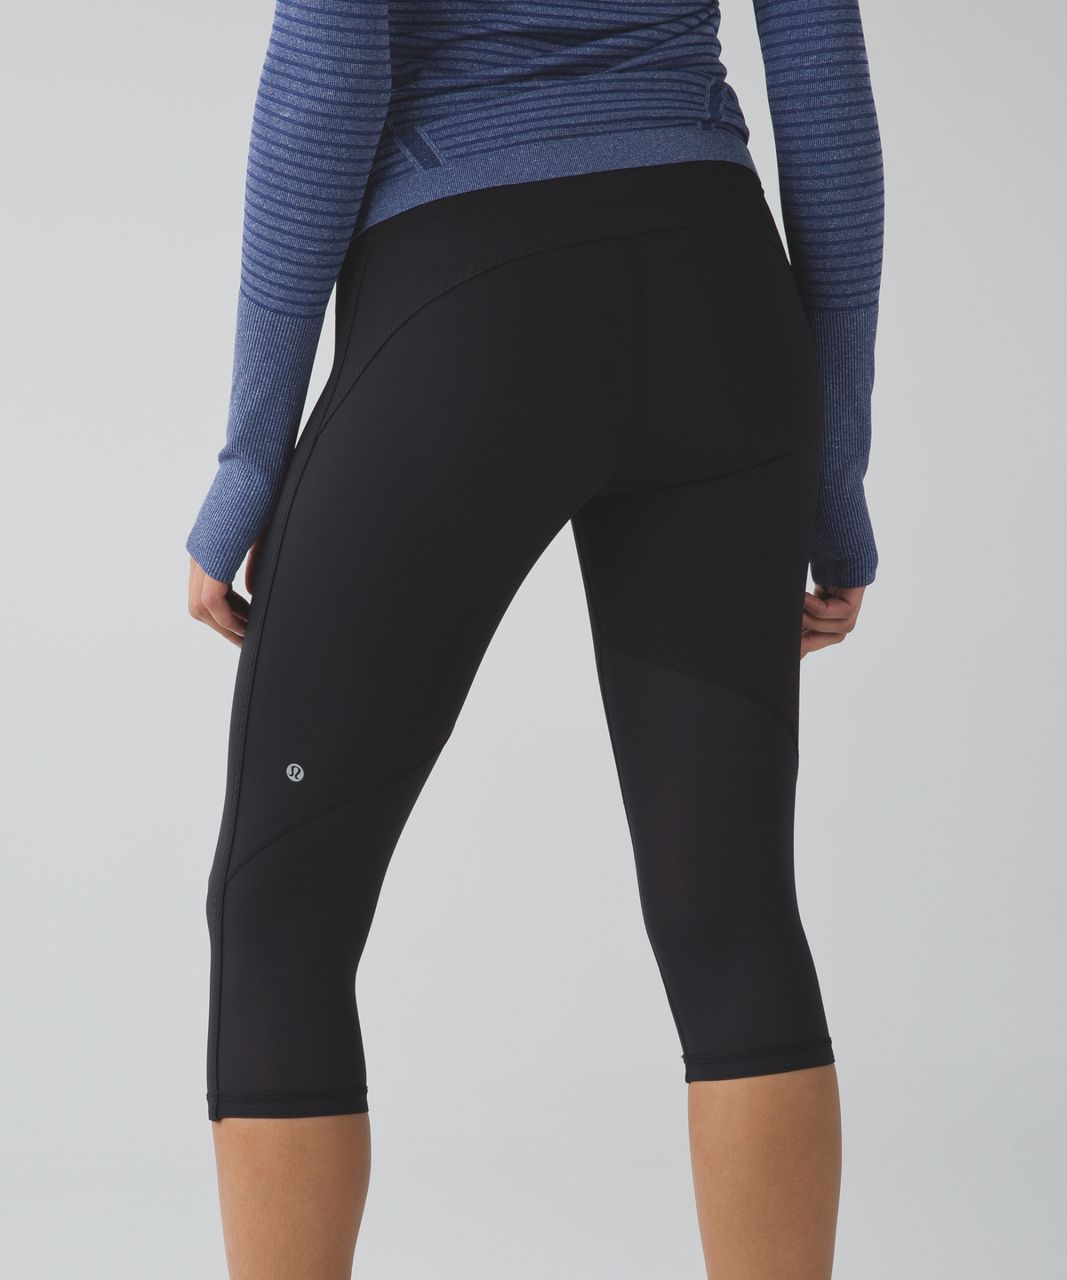 Lululemon Real Quick Crop - Black